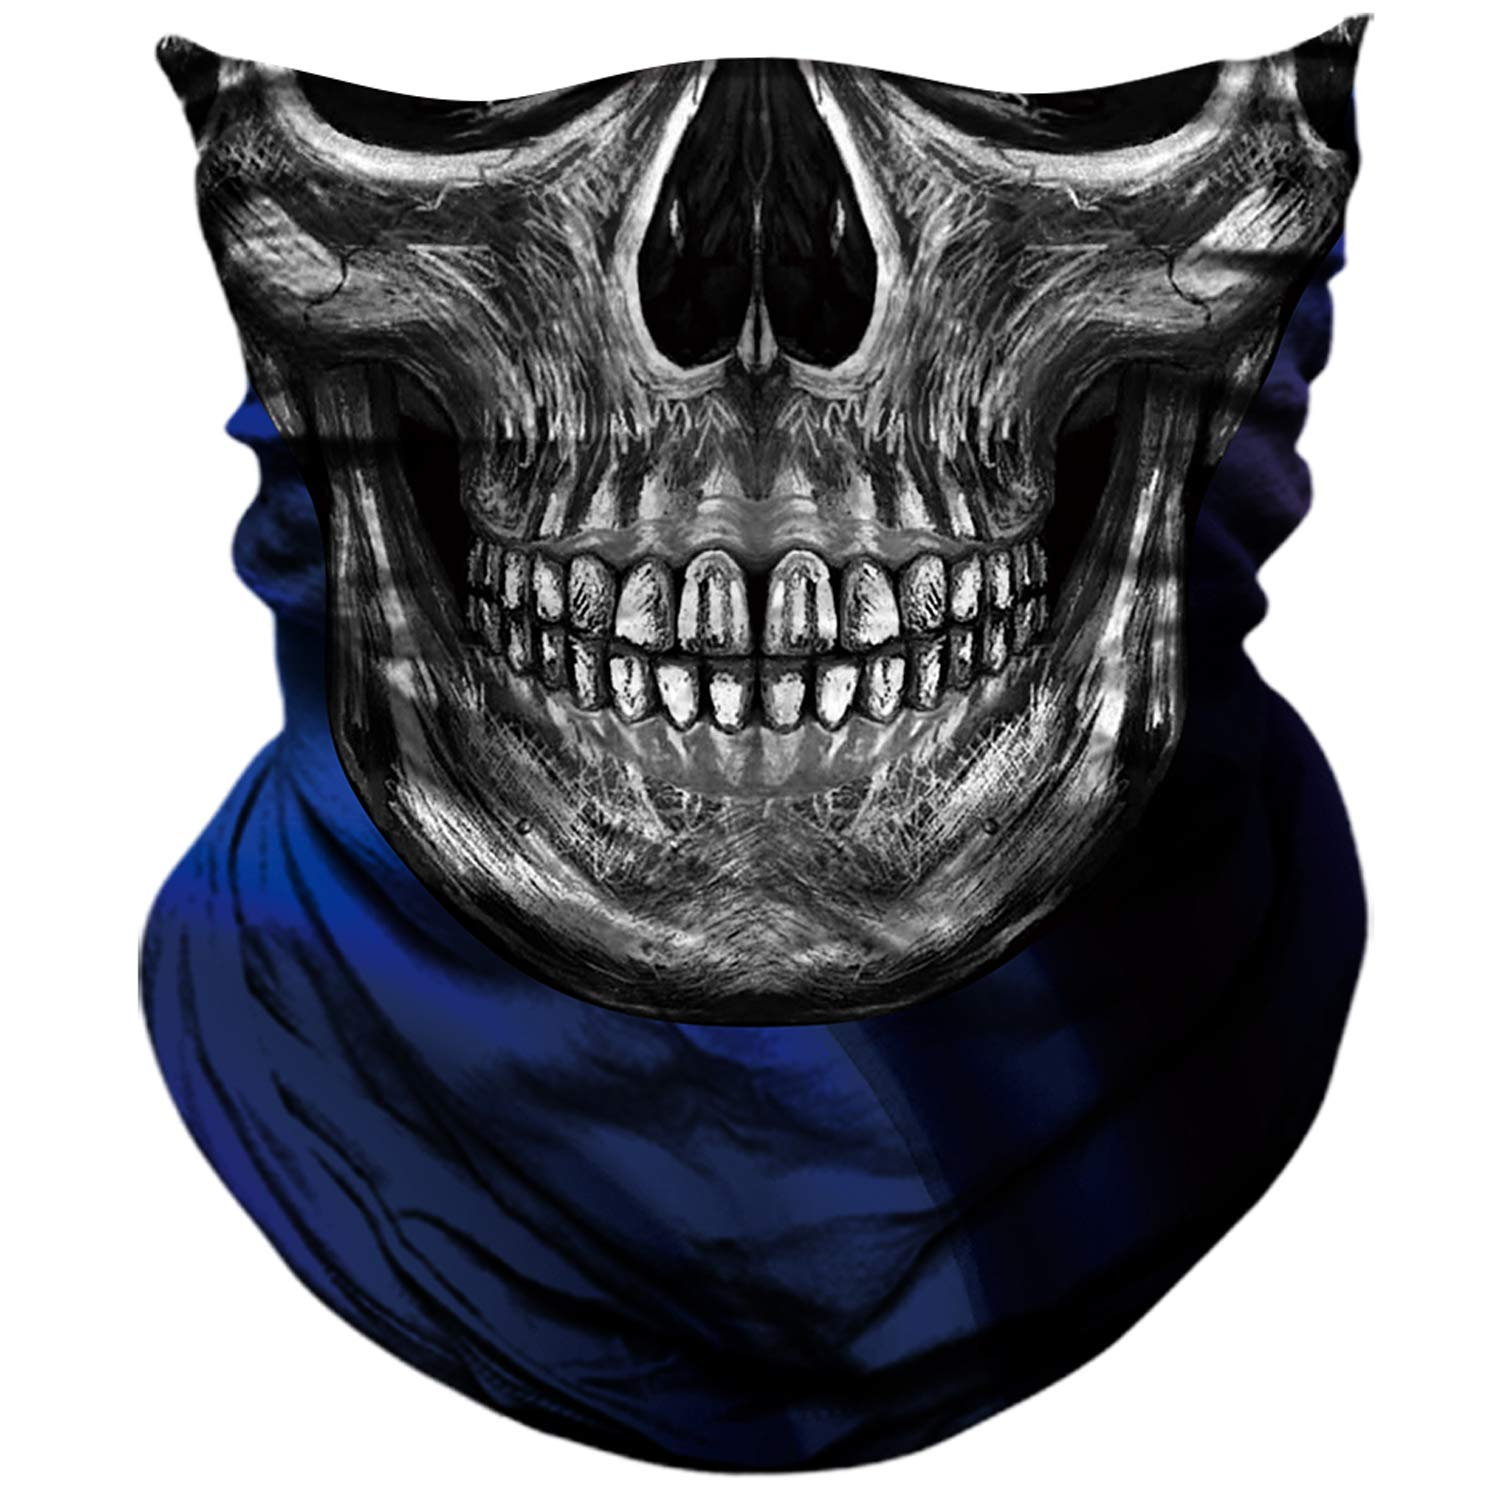 UMFun Unisex Adult 3D Animal Printed Funny Face Cover Cotton Outdoor Mouth Cover